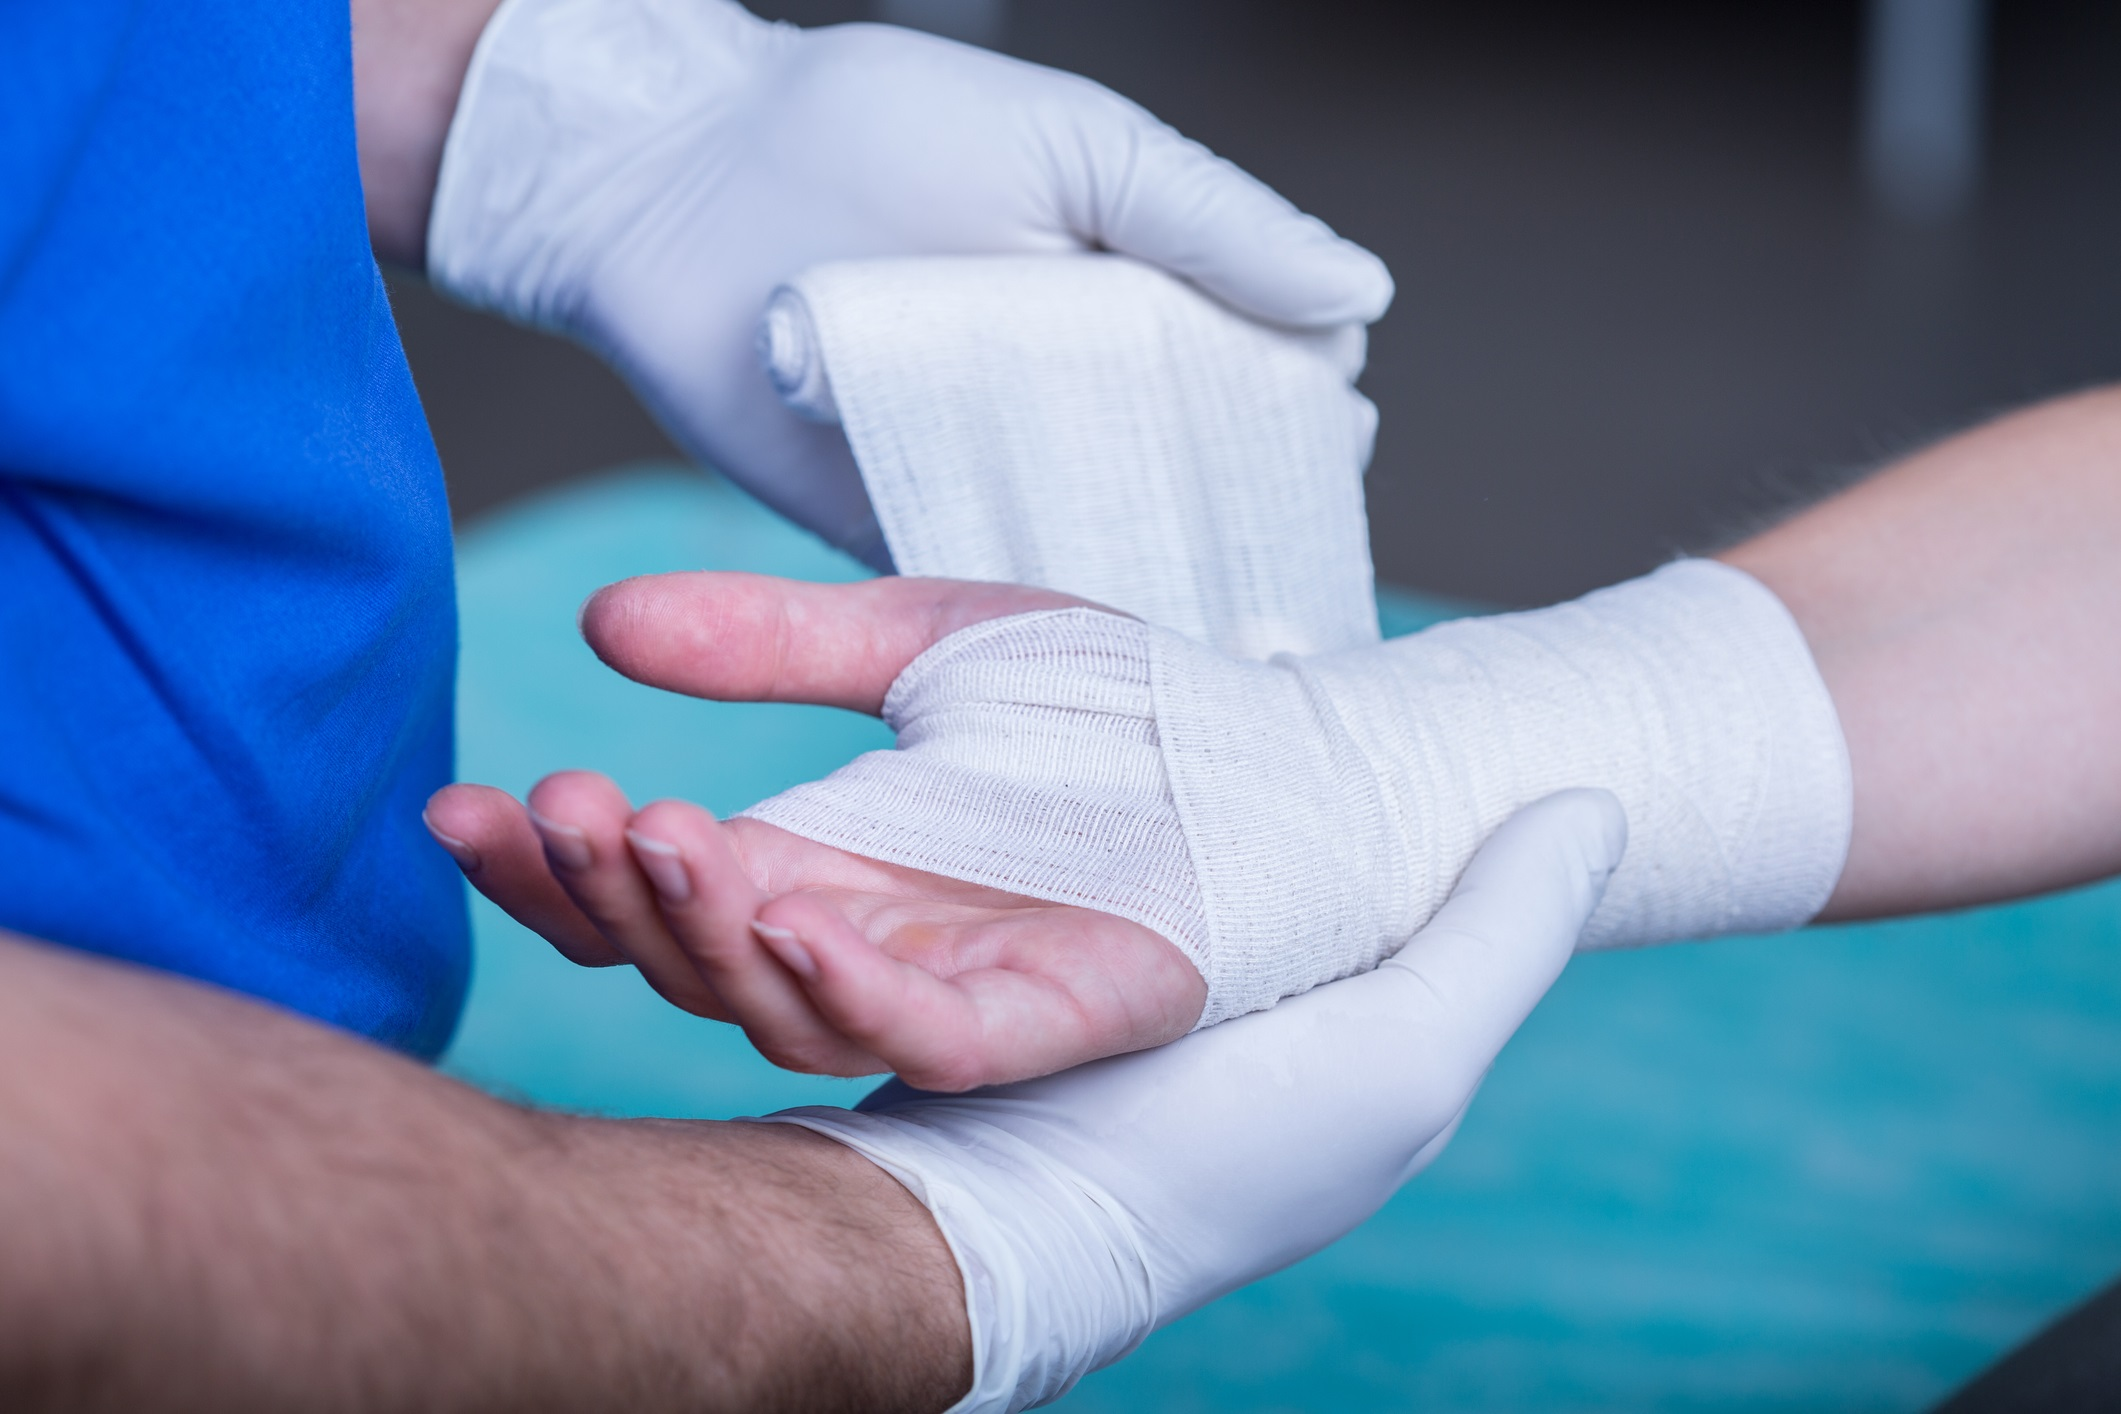 Hand And Wrist Surgery In Iran